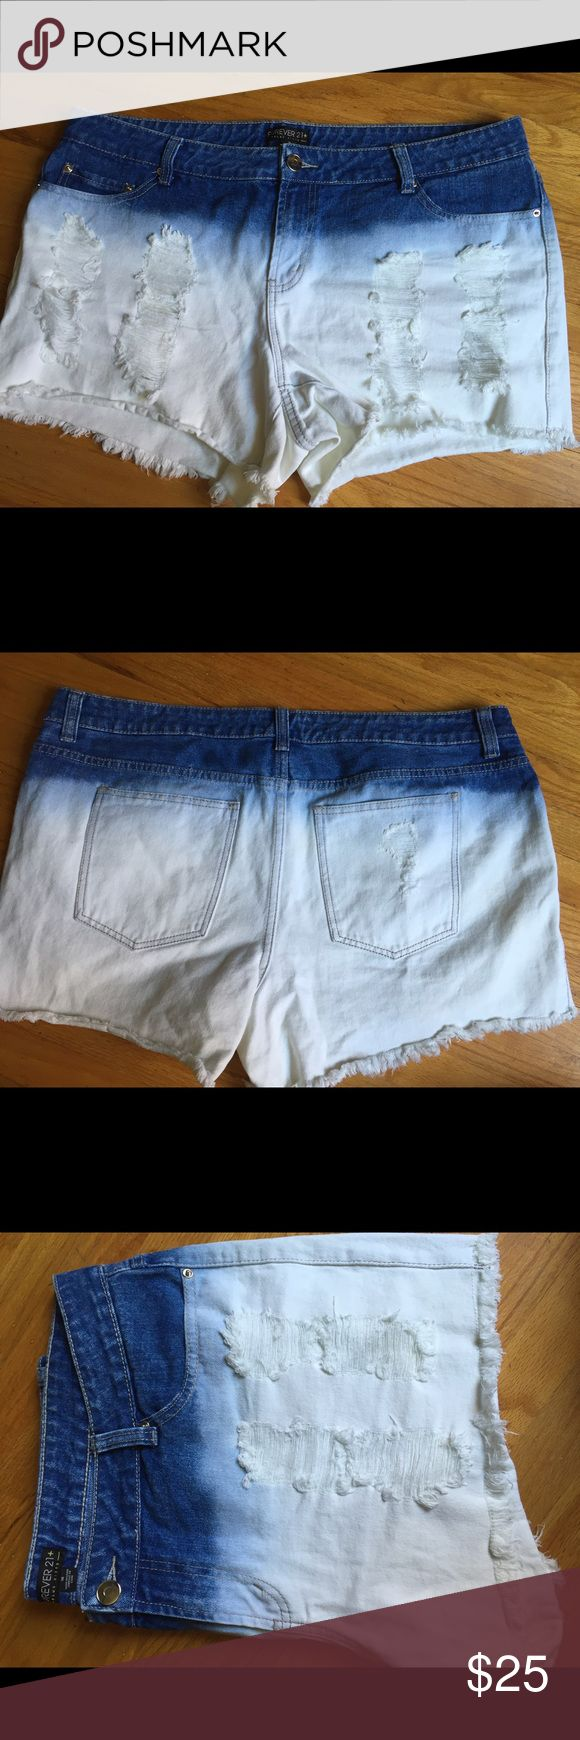 F21 Dip-Dye Shorts NWOT Never worn, only tried on. Denim shorts, bleached dyed & with some distressing! Super cute & perf for summer!!!! Have been laundered, smoke & pet free home! Forever 21 Shorts Jean Shorts